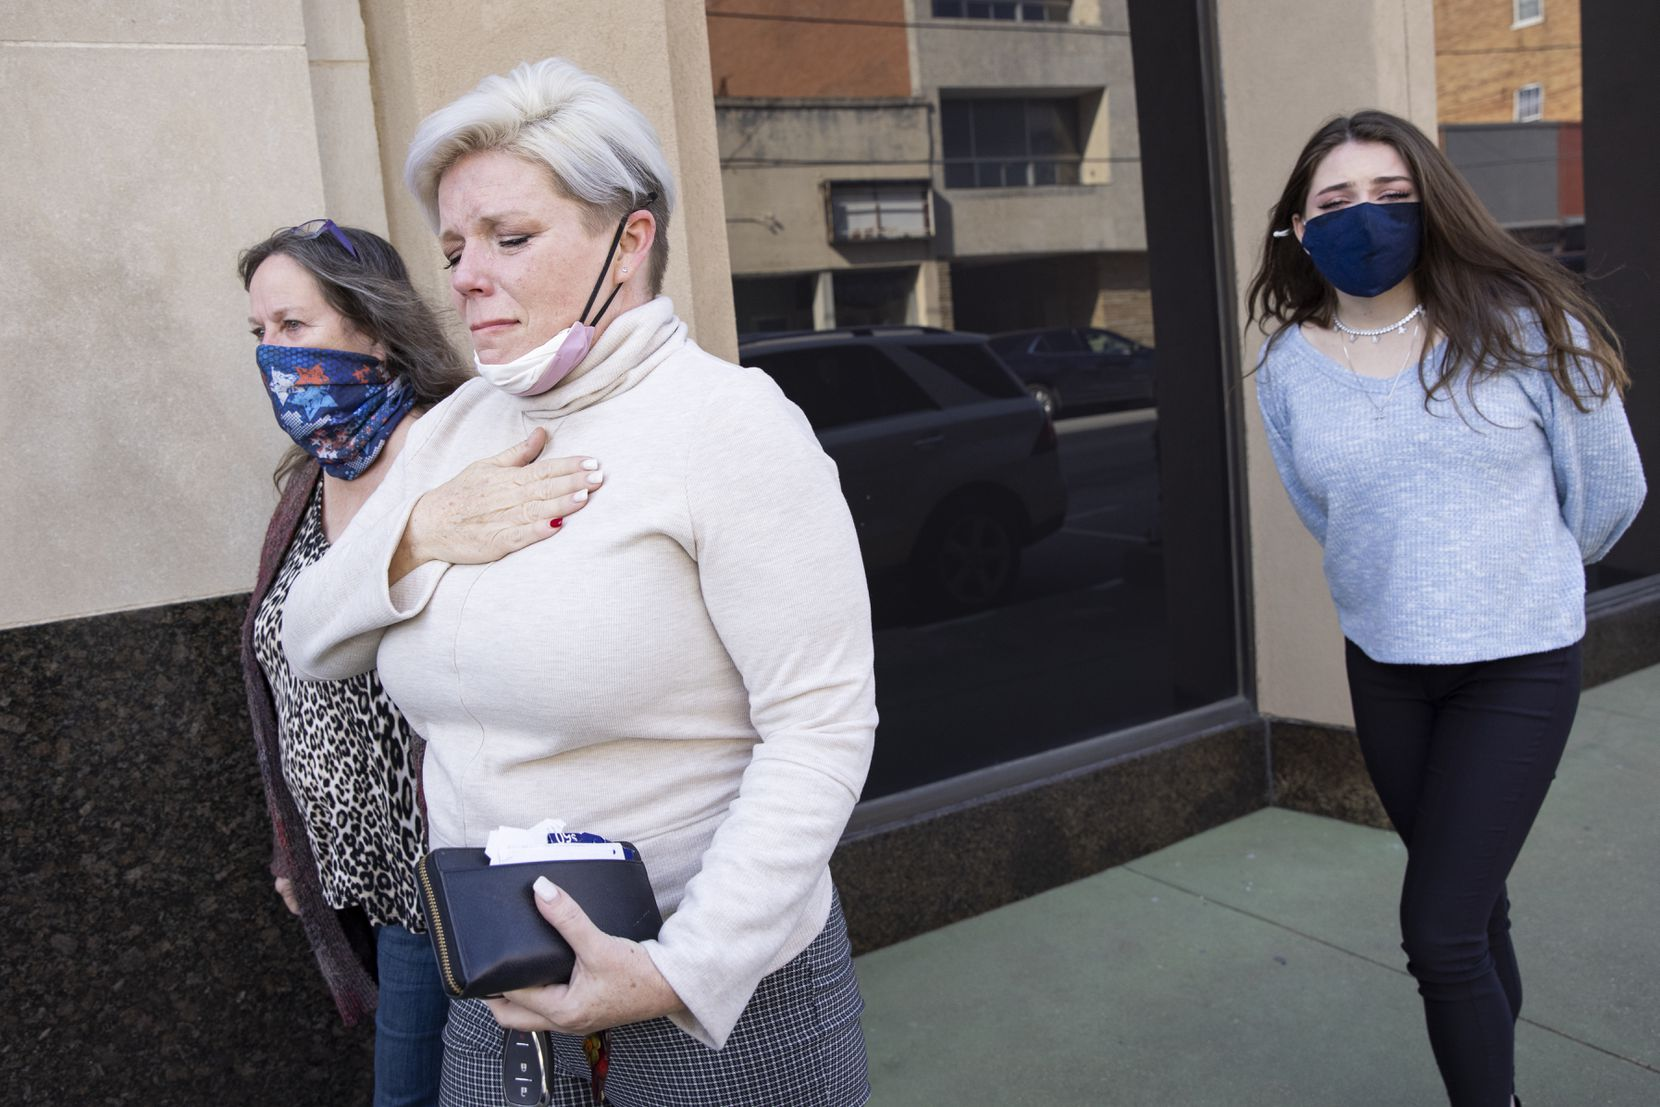 Nicole Reffitt (second from left) and family walk out of the federal courthouse at the United States Courthouse Annex in Sherman after her husband's Thursday detention hearing. Guy W. Reffitt is facing charges after the riot at the U.S. Capitol on Jan. 6.